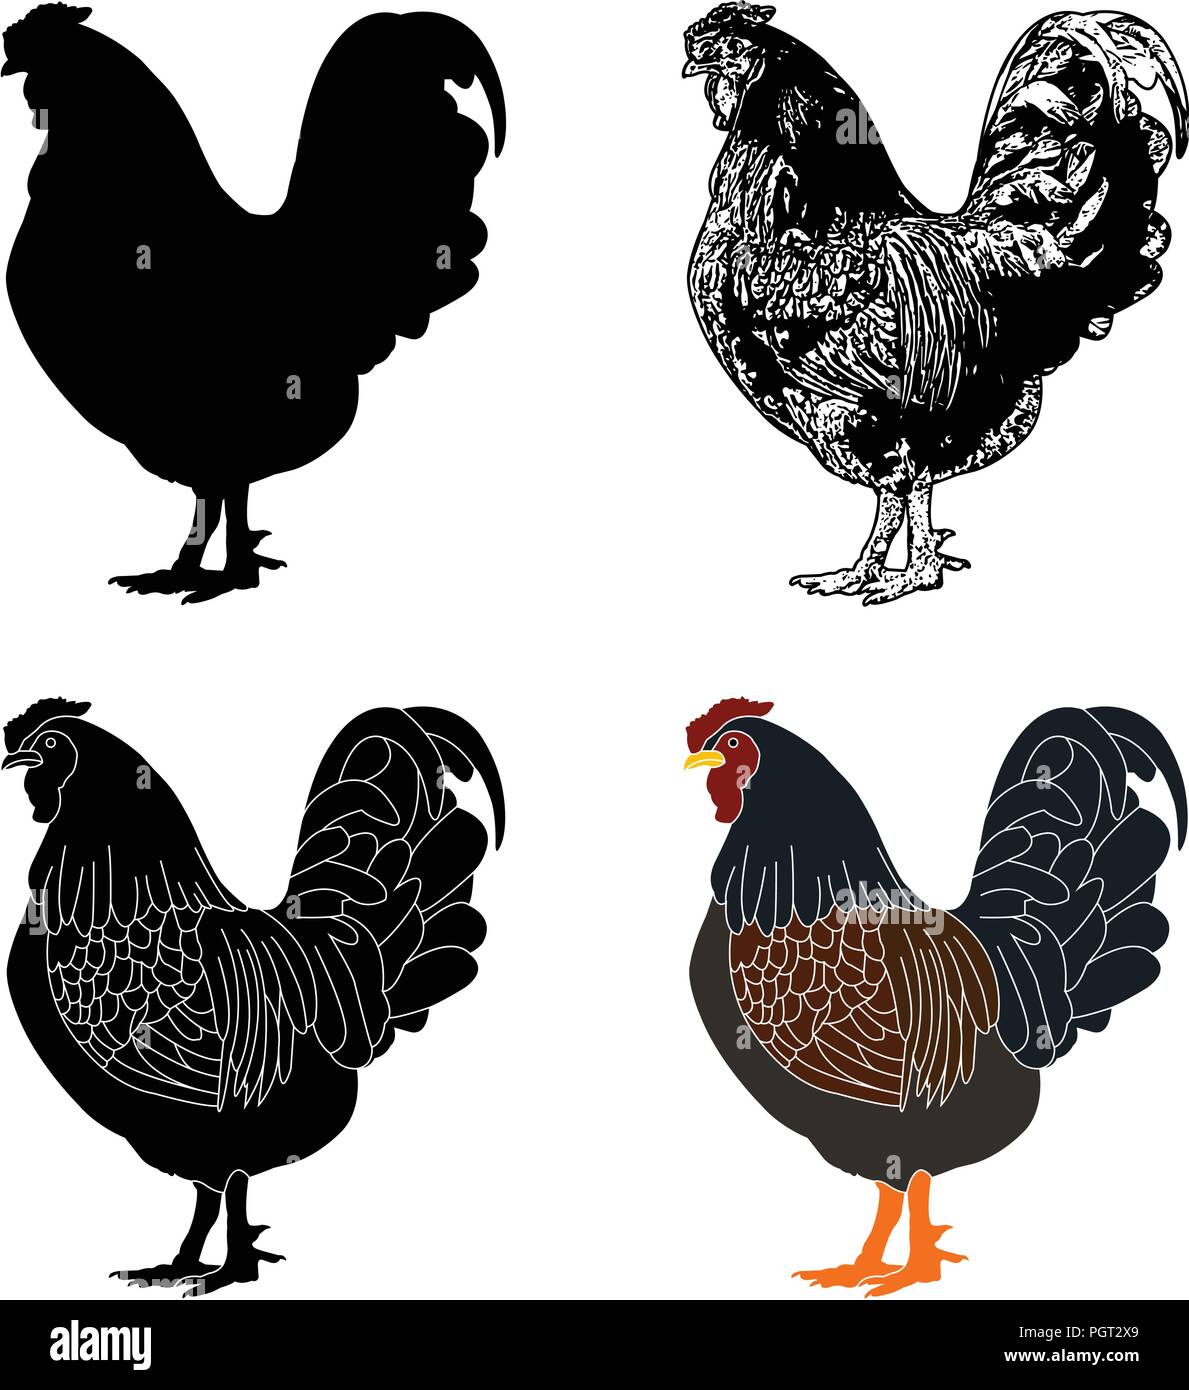 hen silhouette,sketch and illustration - vector - Stock Vector